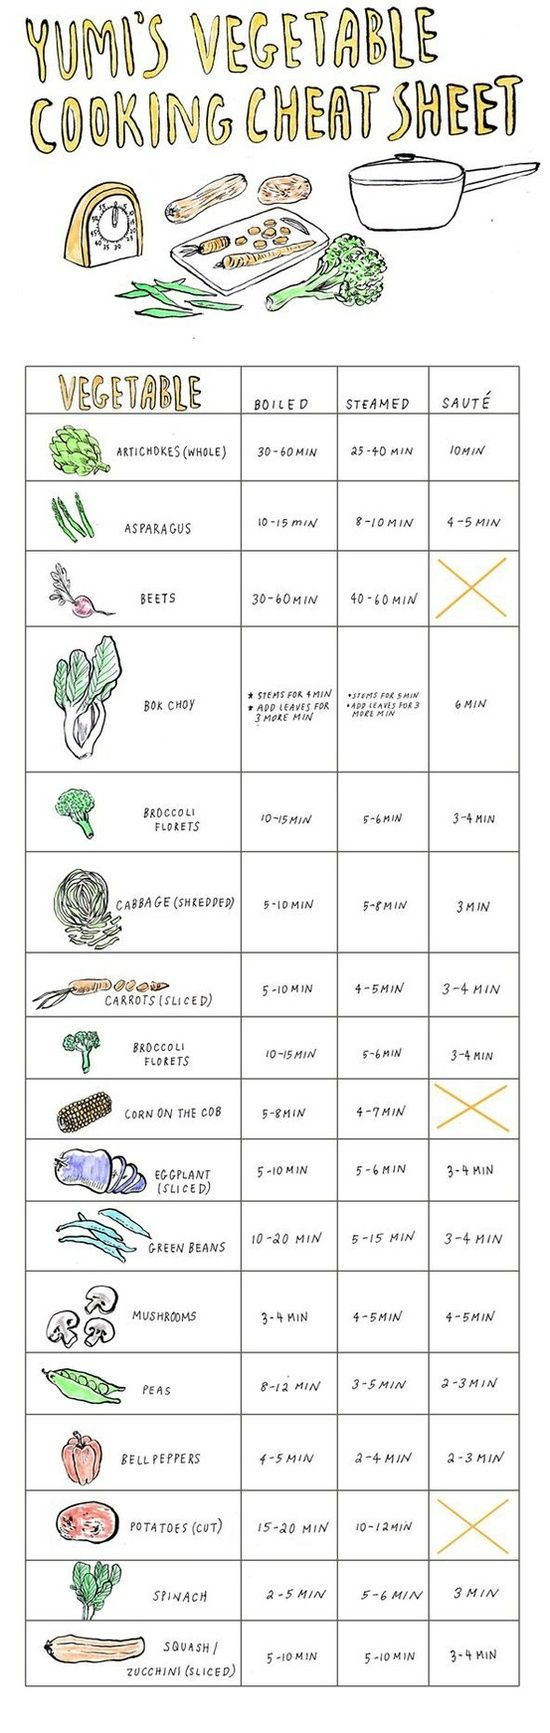 Not that you should be cooking your veggies all the time, (they are better raw!) but when you do, here is a handy chart.